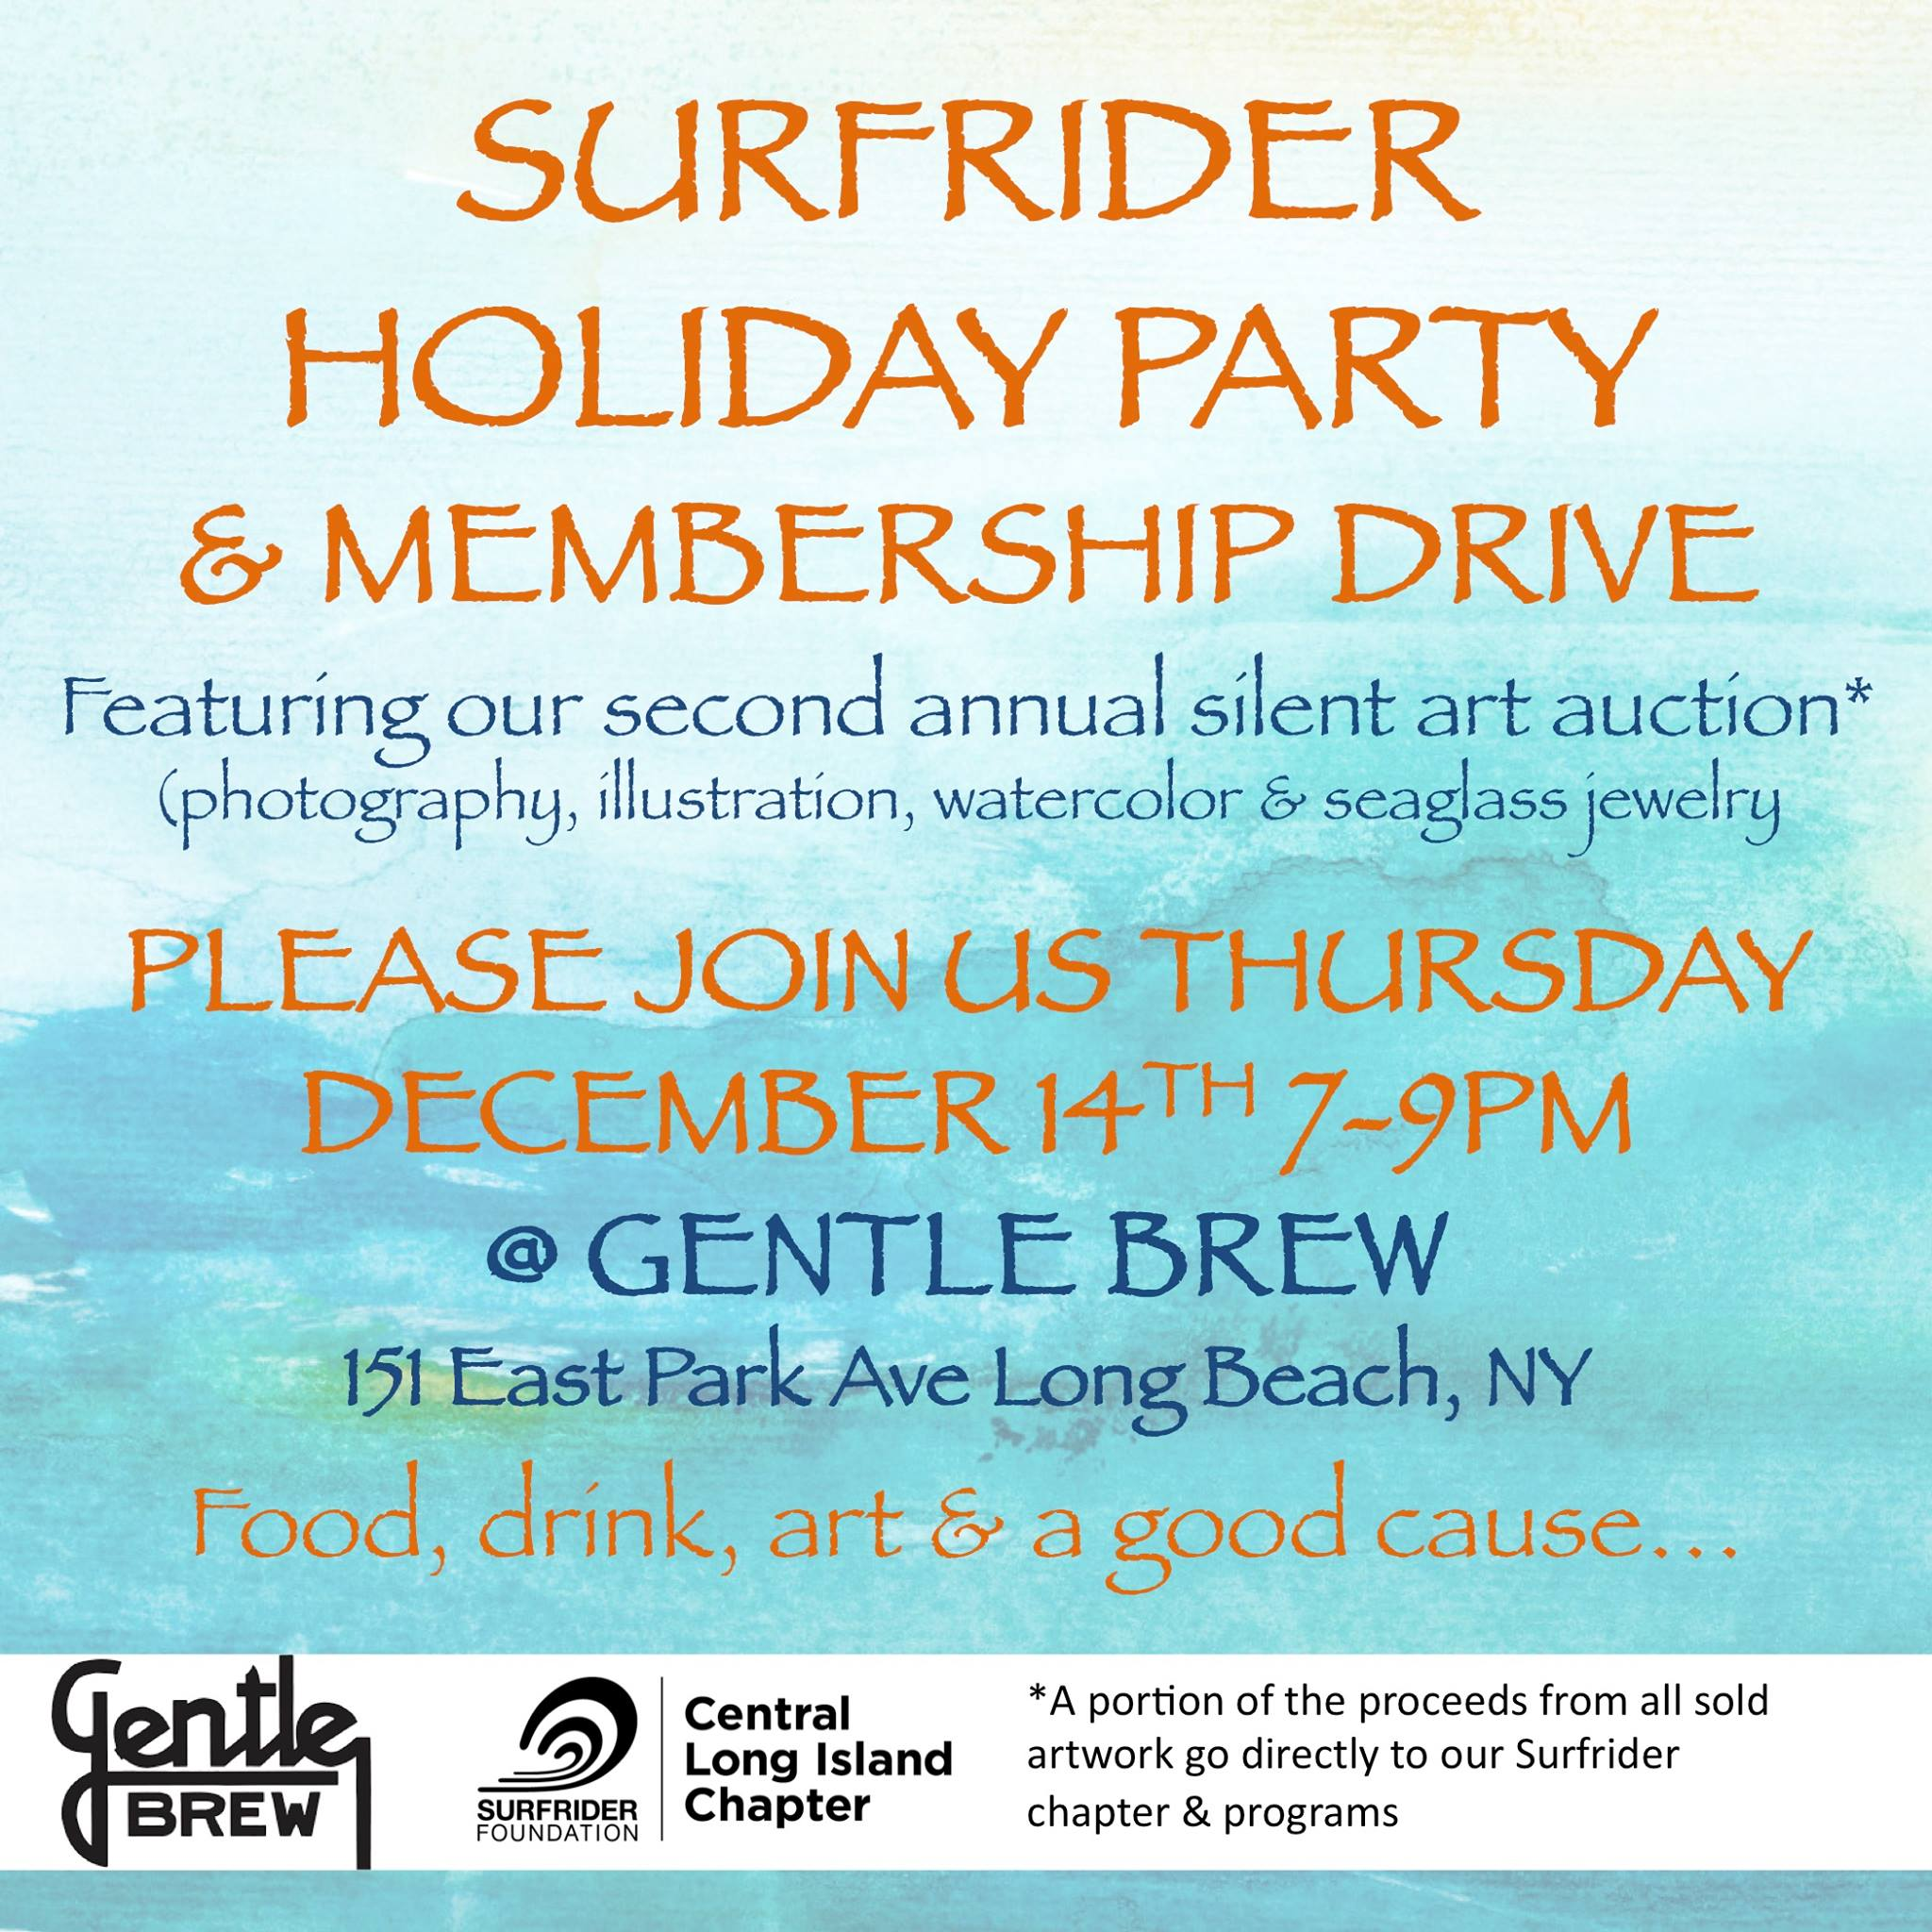 Come celebrate at Surfrider Central Long Island's 2nd Annual Silent Art Auction & Holiday Party!